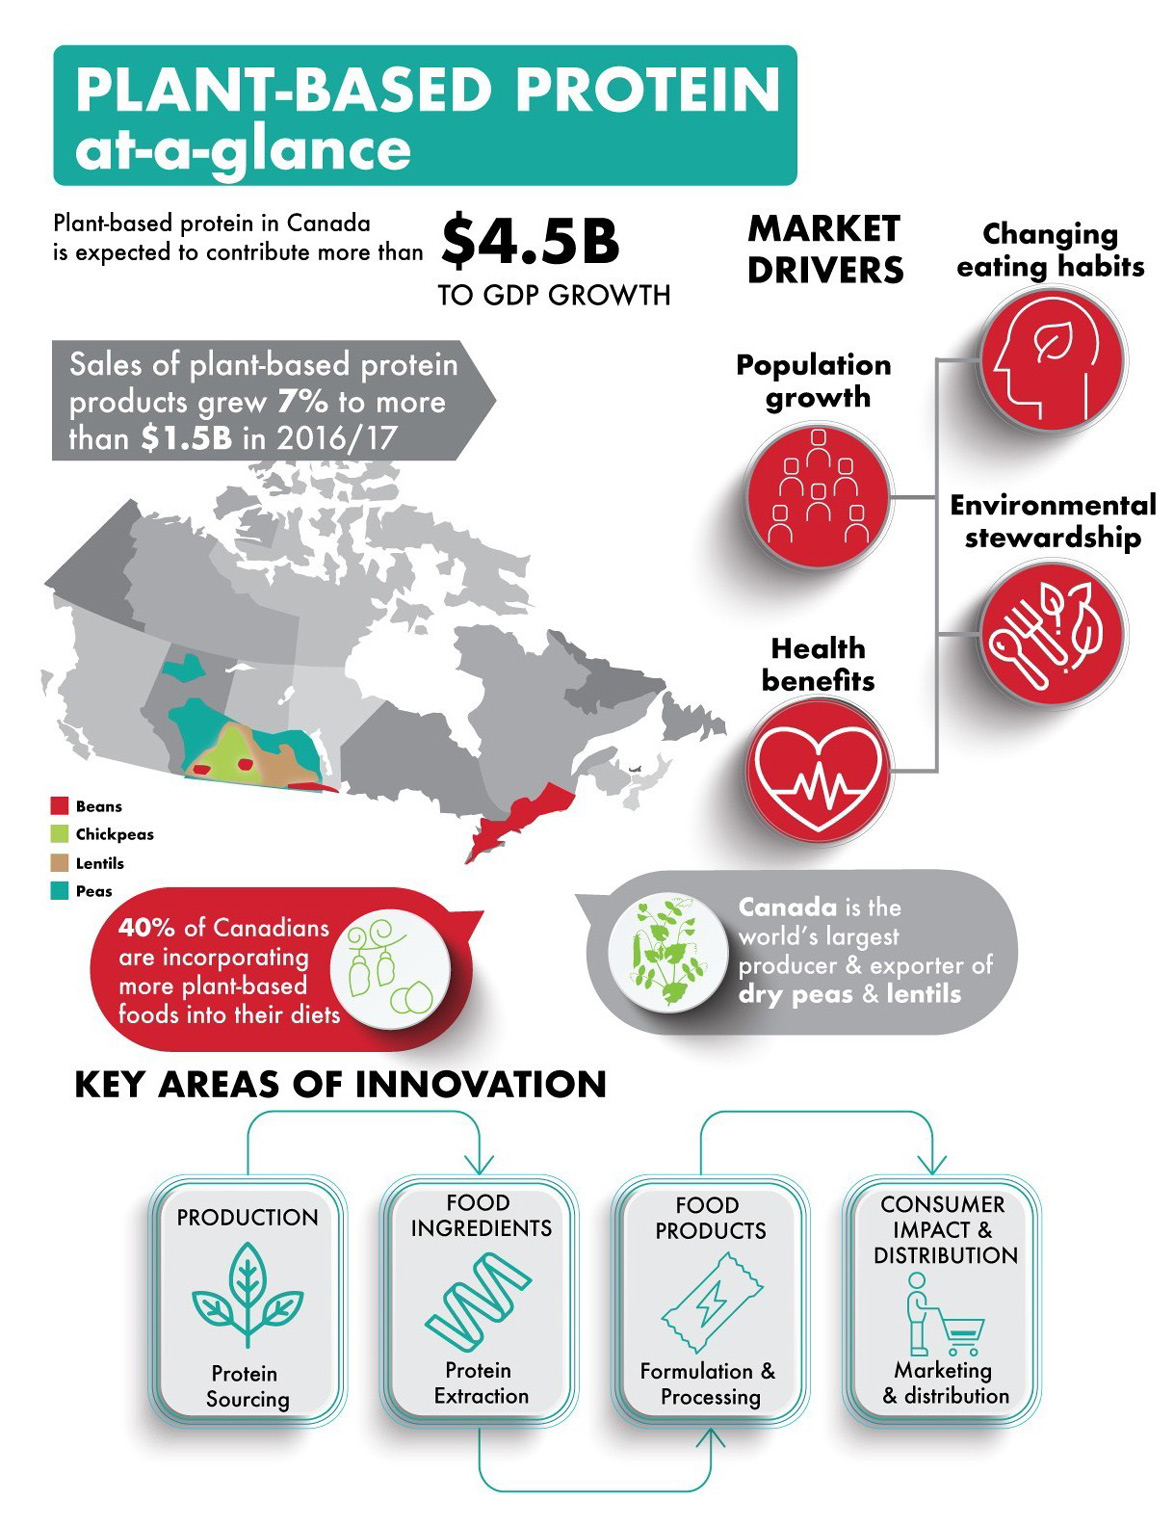 Overview of the plant-based protein market in Canada